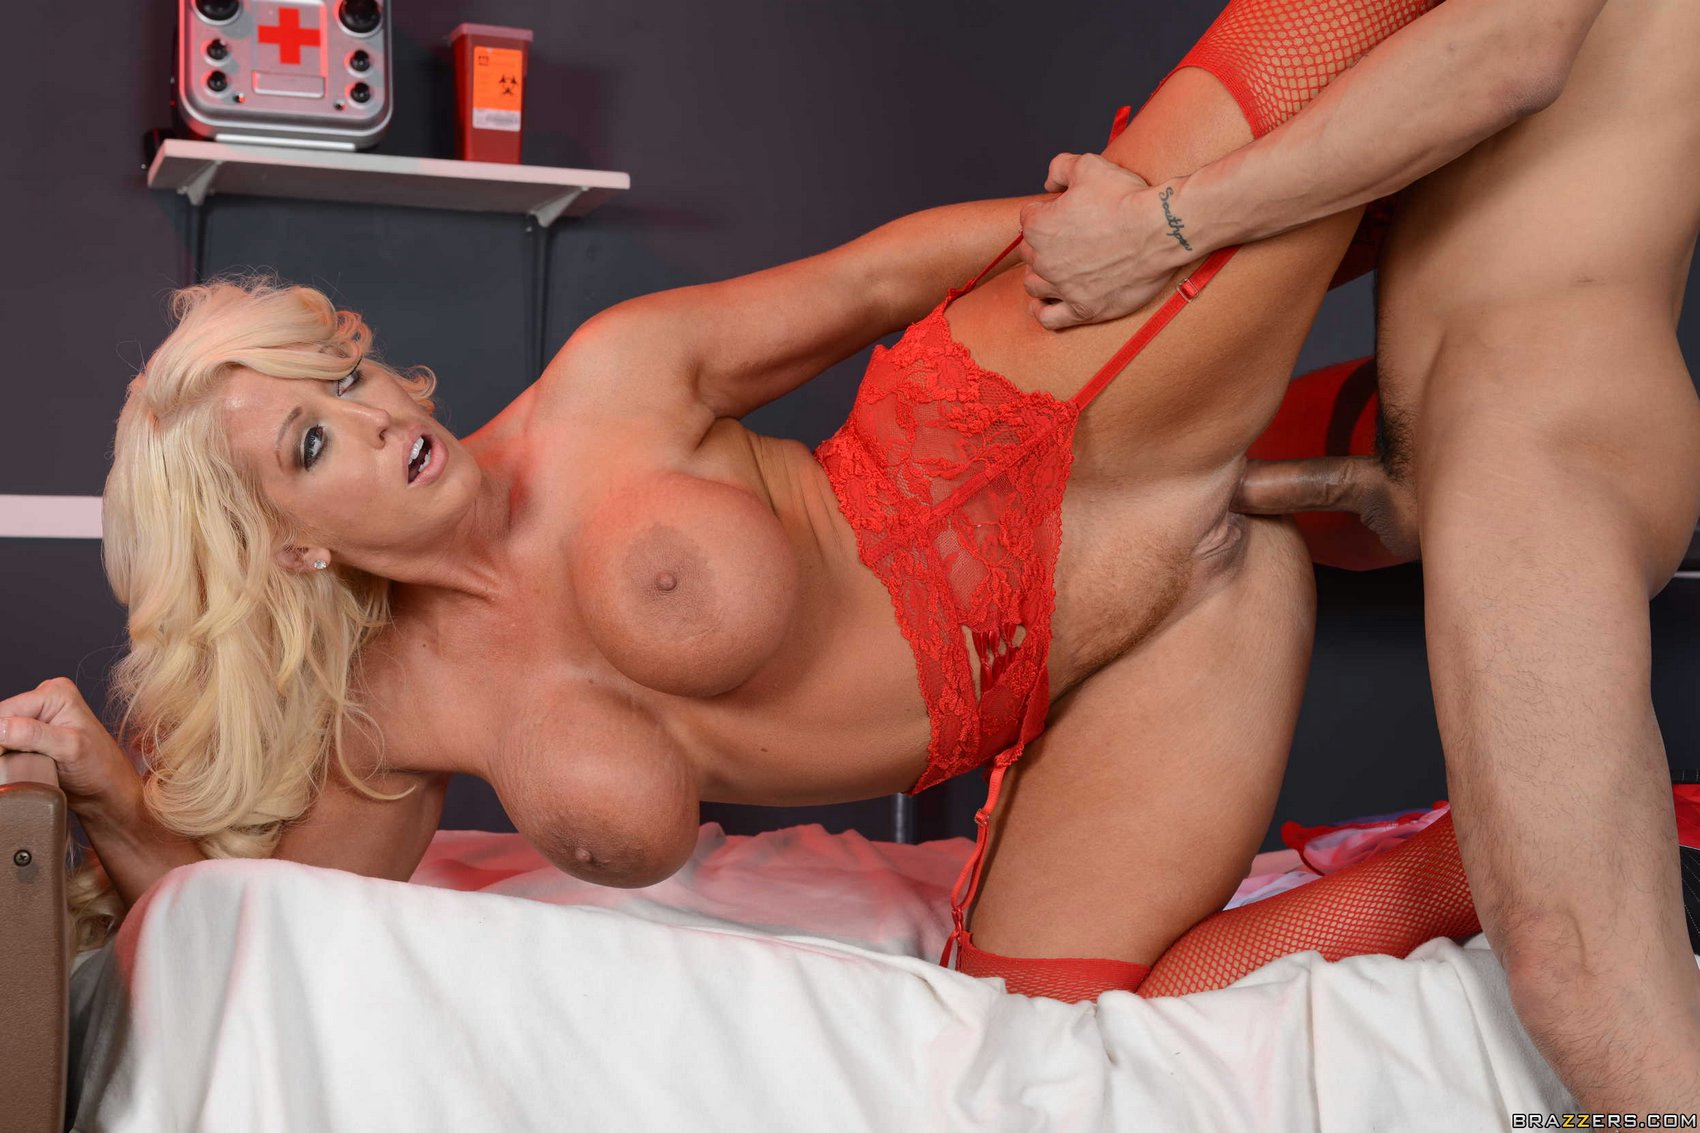 Very grateful Sexy nurse fucking patient share your